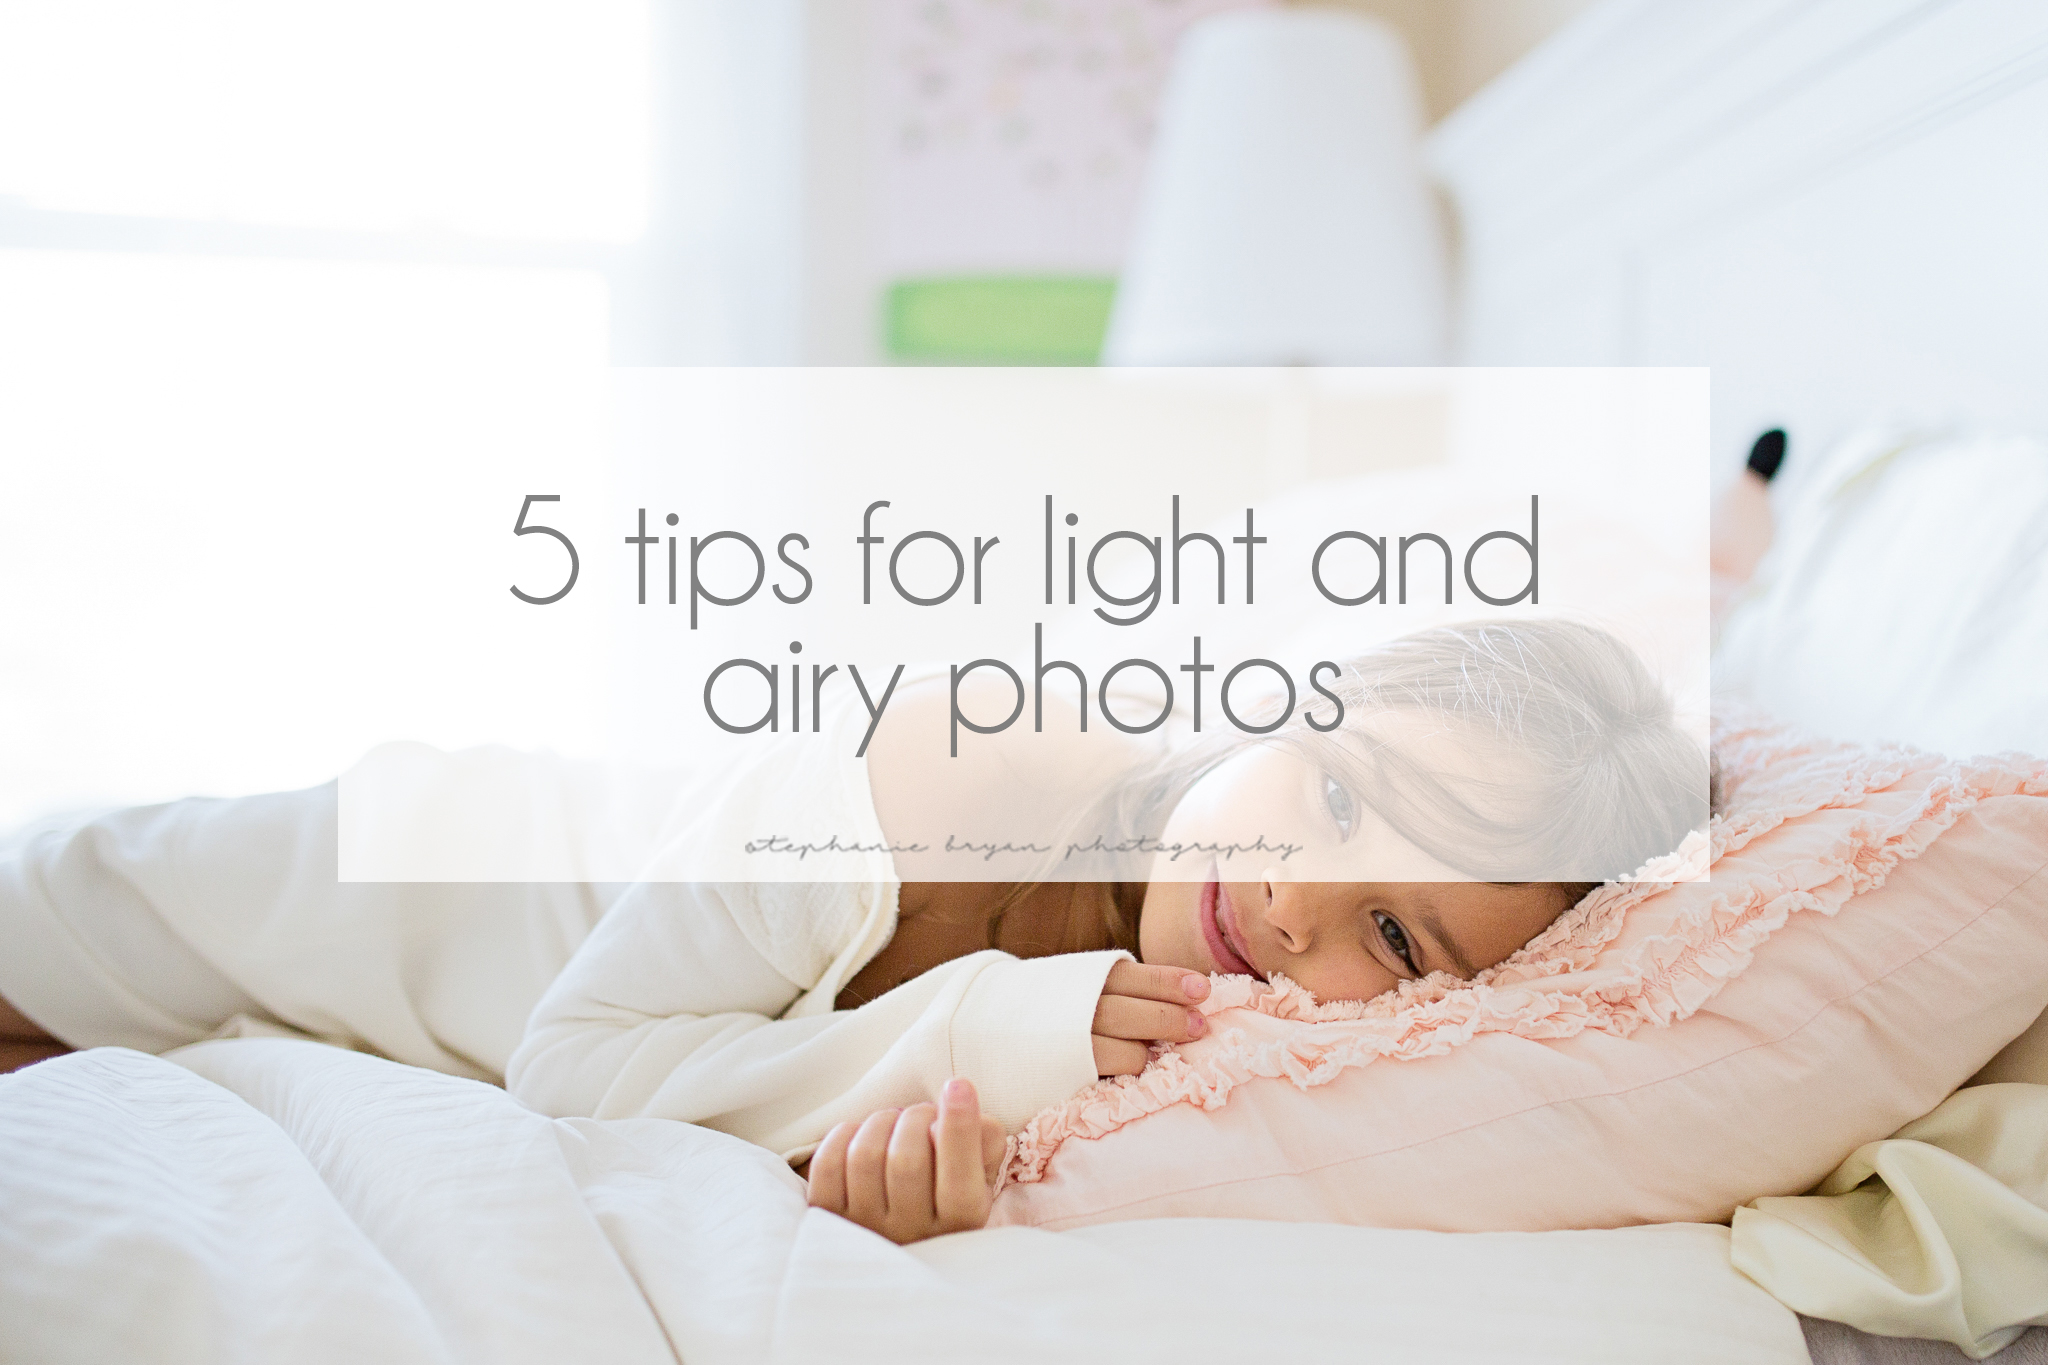 Stephanie Bryan Photography - 5 tips for light and airy photos